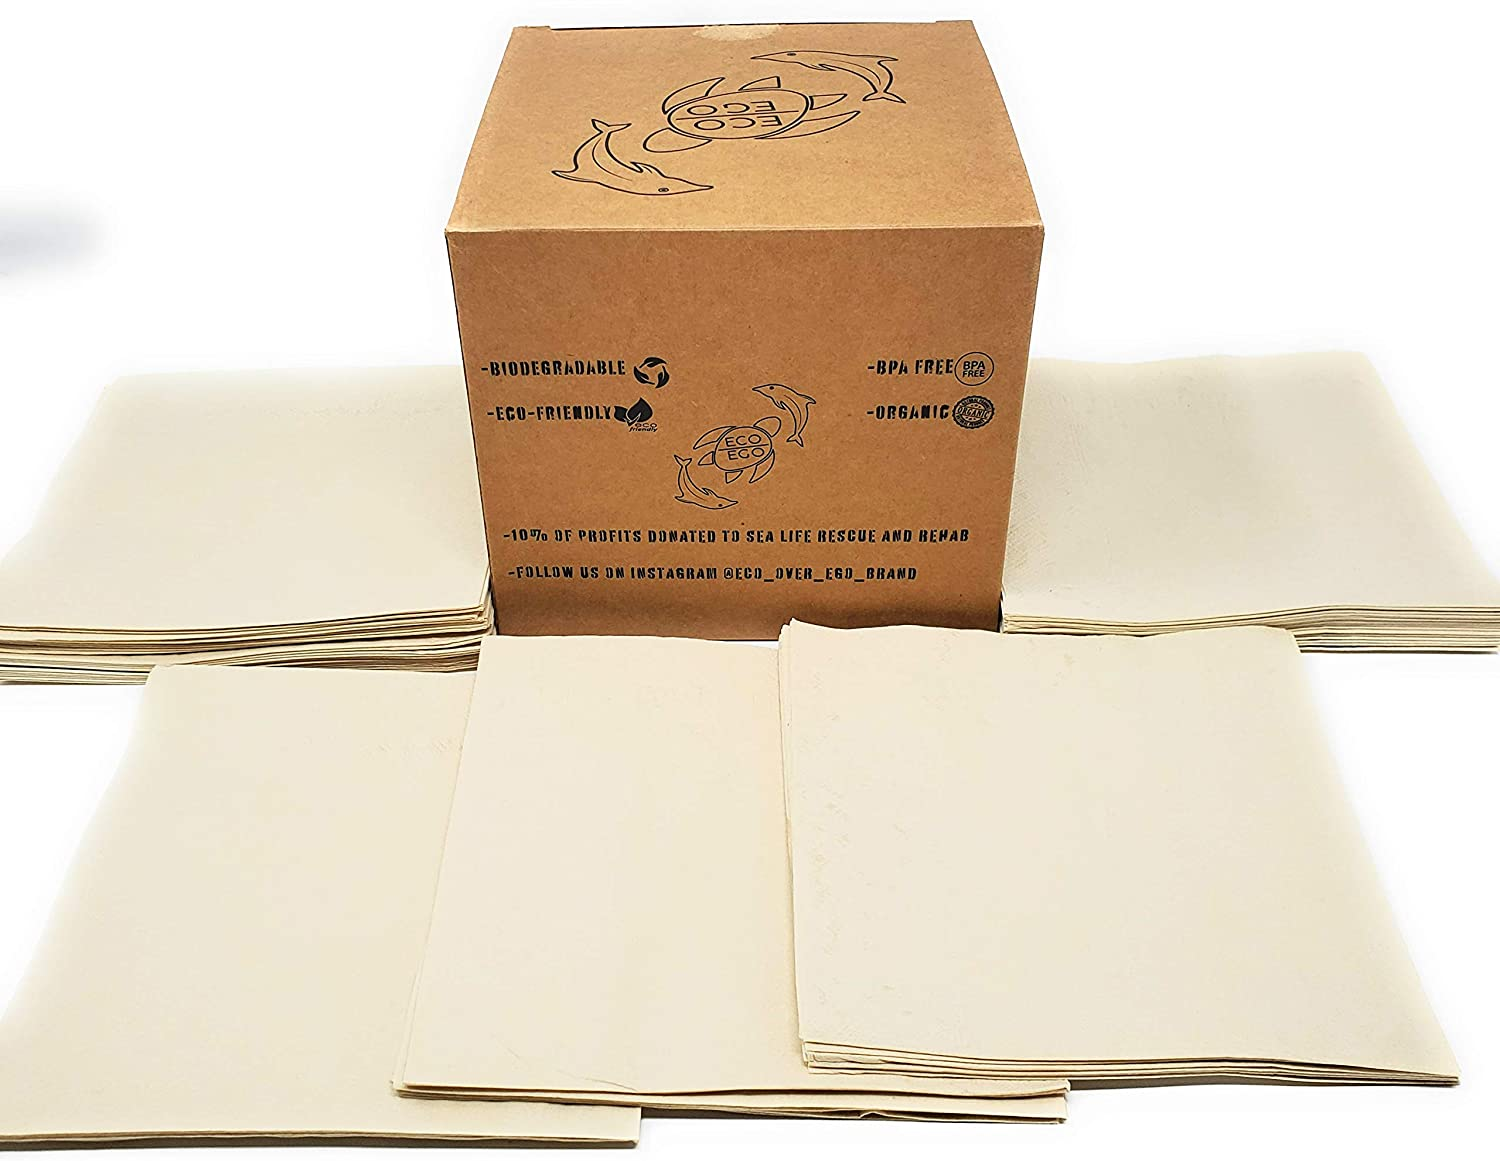 200 count extra soft, heavy duty eco-friendly recycled Bamboo Napkins. 13'' x 13'' full size napkins. 2 ply construction/18 gsm for added durability. Recyclable, compostable, and biodegradable.